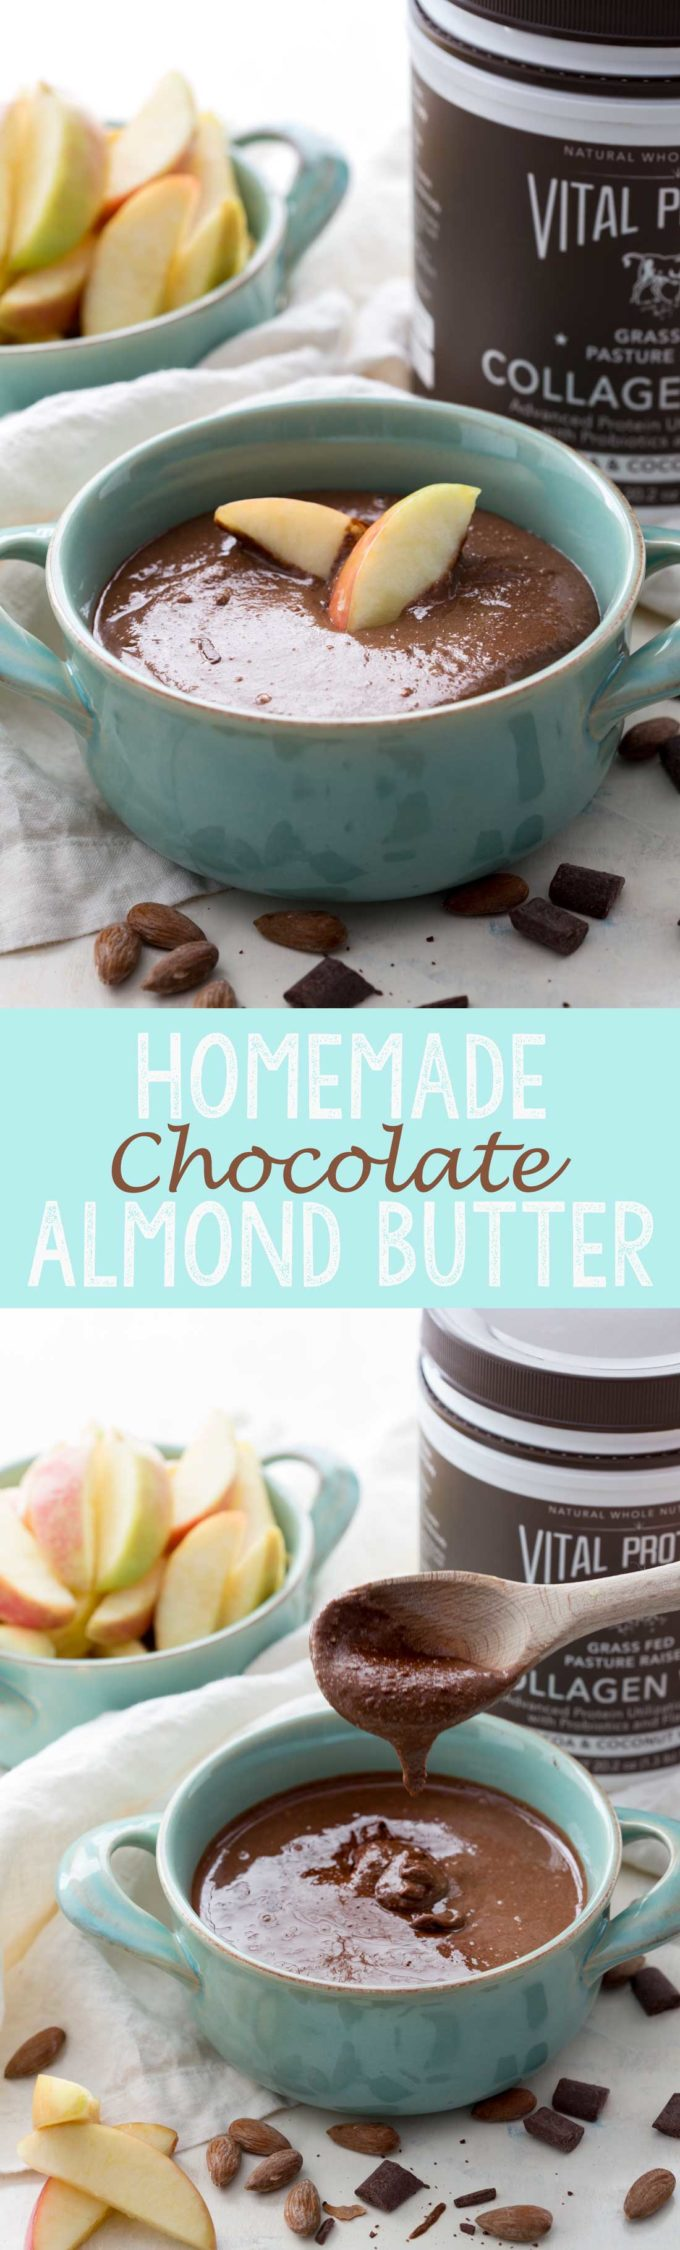 A healthy, homemade, easy chocolate almond butter with an added scoop of protein to make it even better!